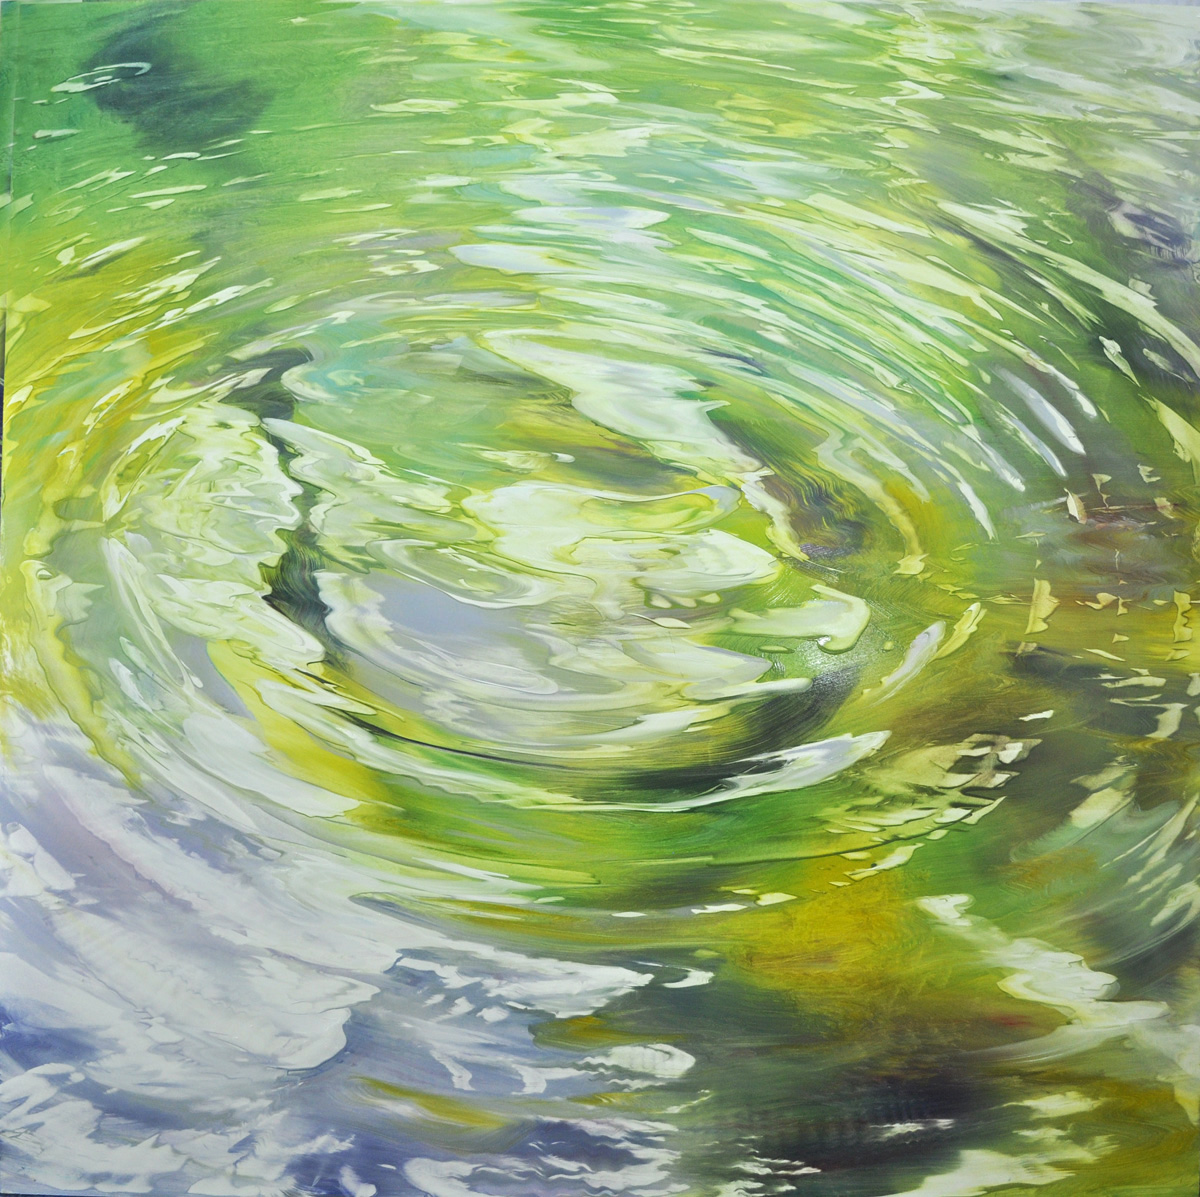 Dunlop_water circles_ concentric contemplation_oil on pvc panel_48x48_15000.jpg